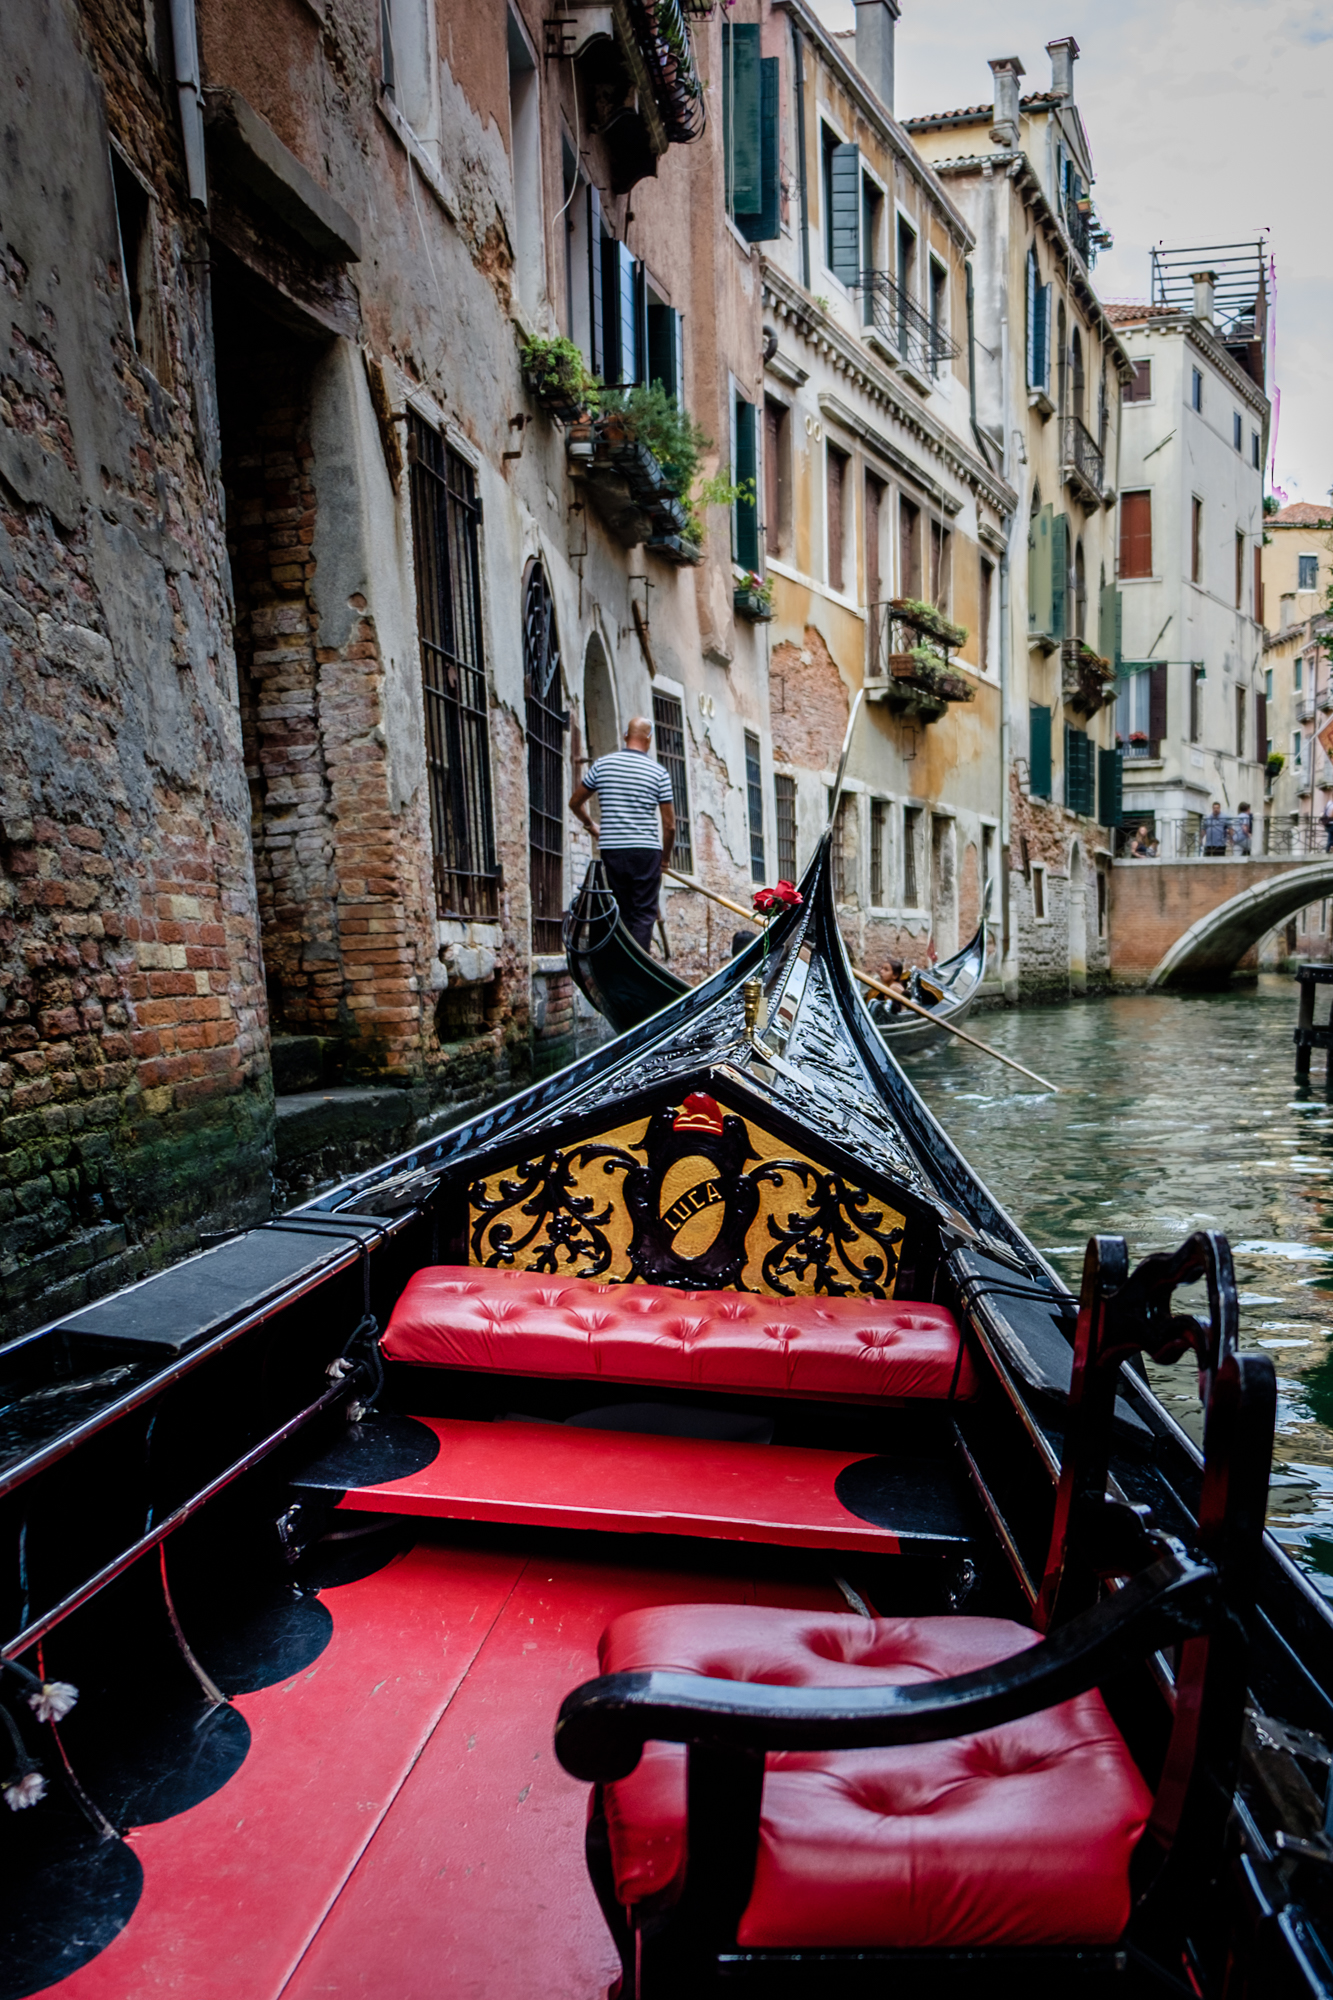 Photo of me riding the gondola in Venice by Trevor Sherwin